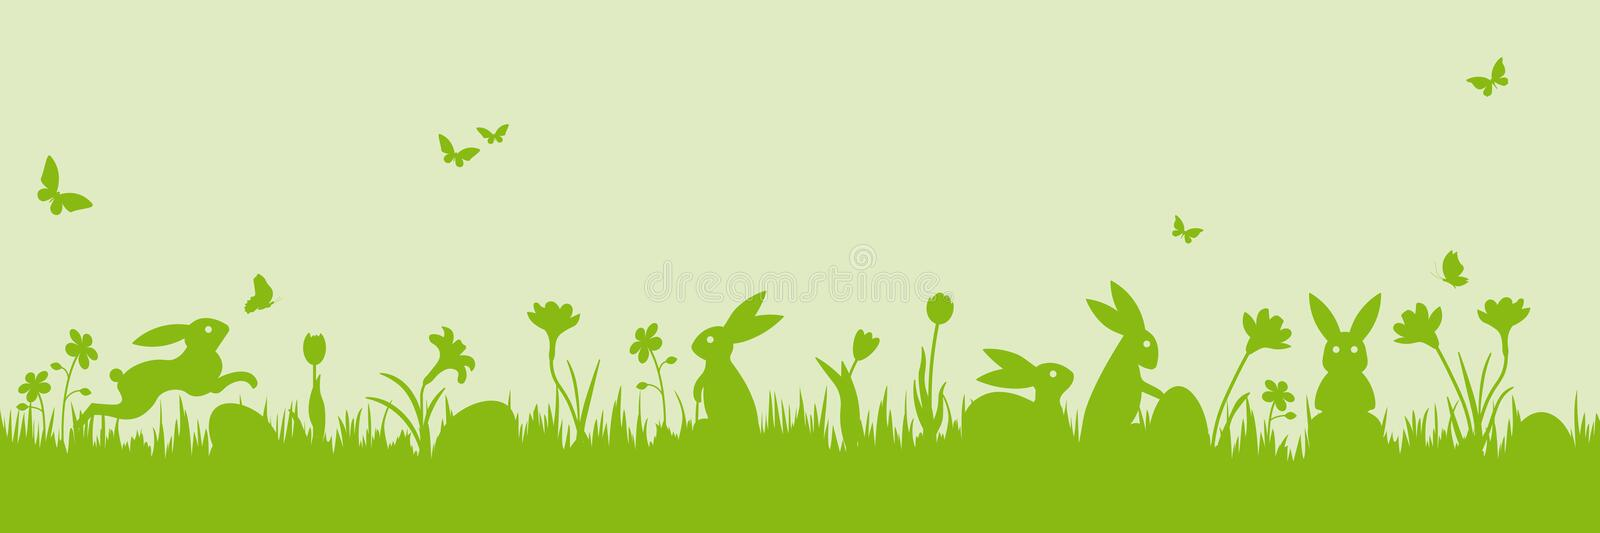 Easter scene banner vector illustration. Easter banner. Vector illustration with easter bunnies, flowers, butterflies and eggs on a meadow vector illustration